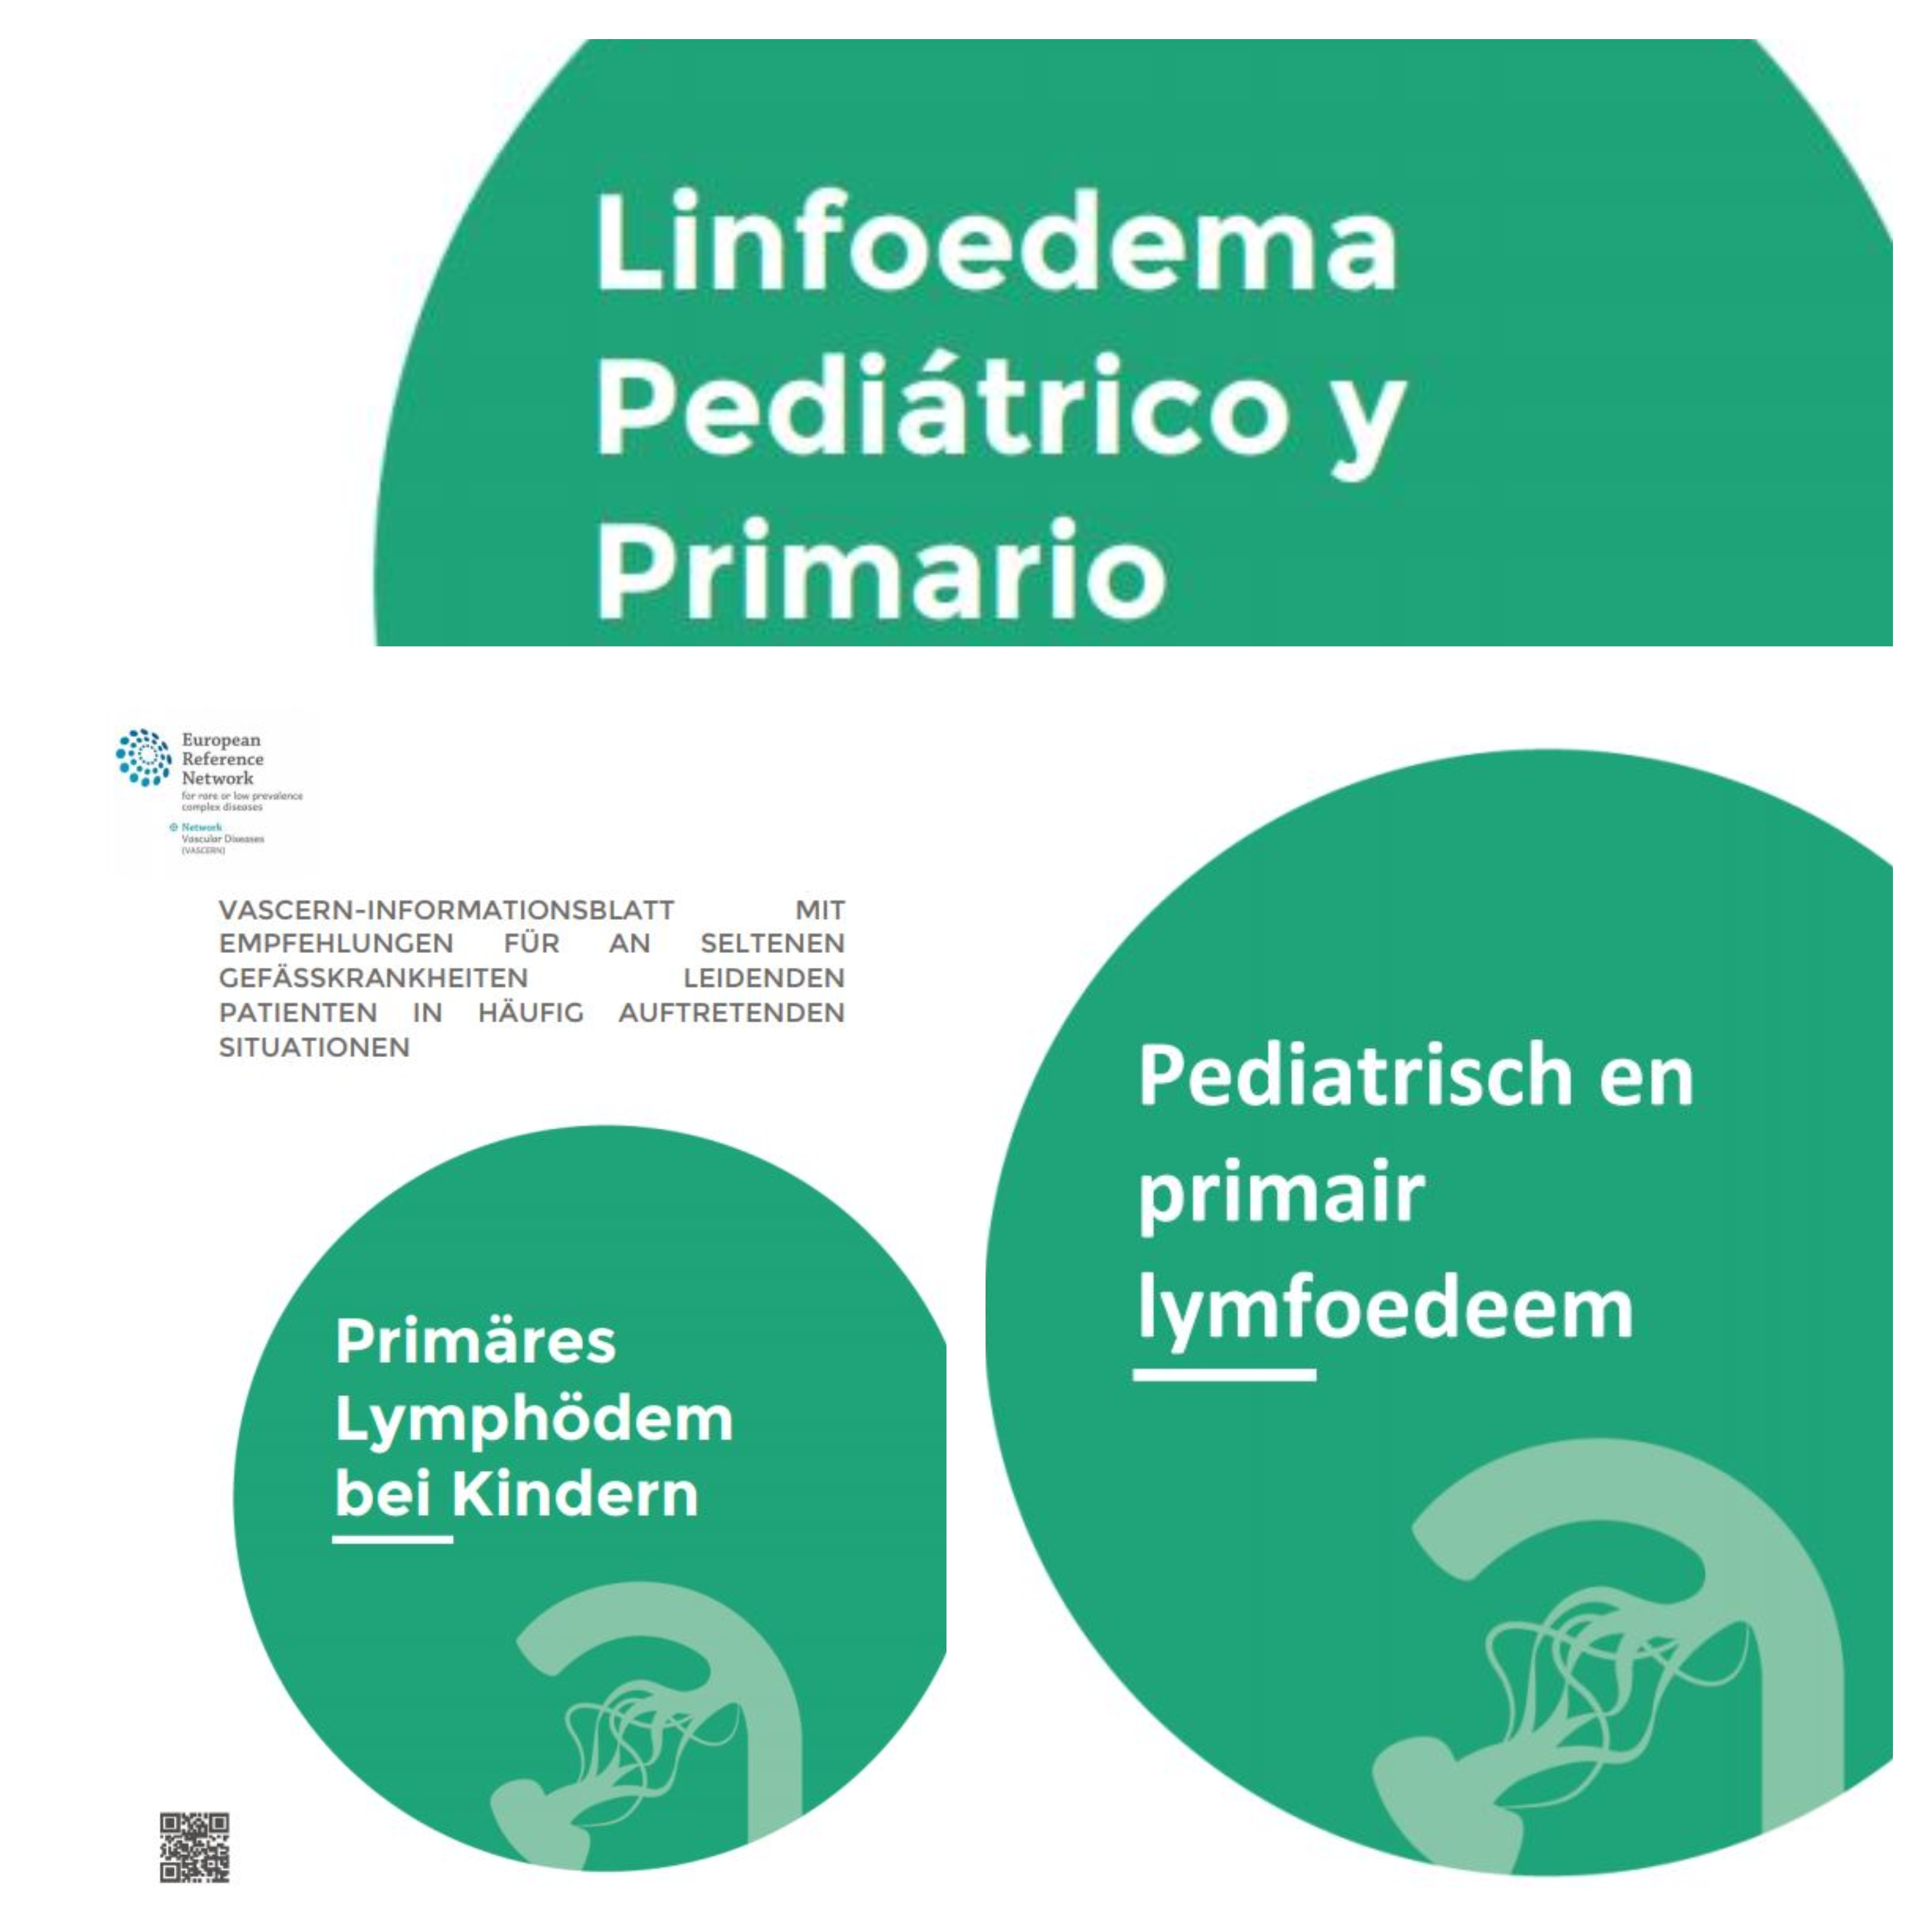 New translations of Do's and Don'ts factsheets for Pediatric and Primary Lymphedema (by the PPL-WG) now now available!